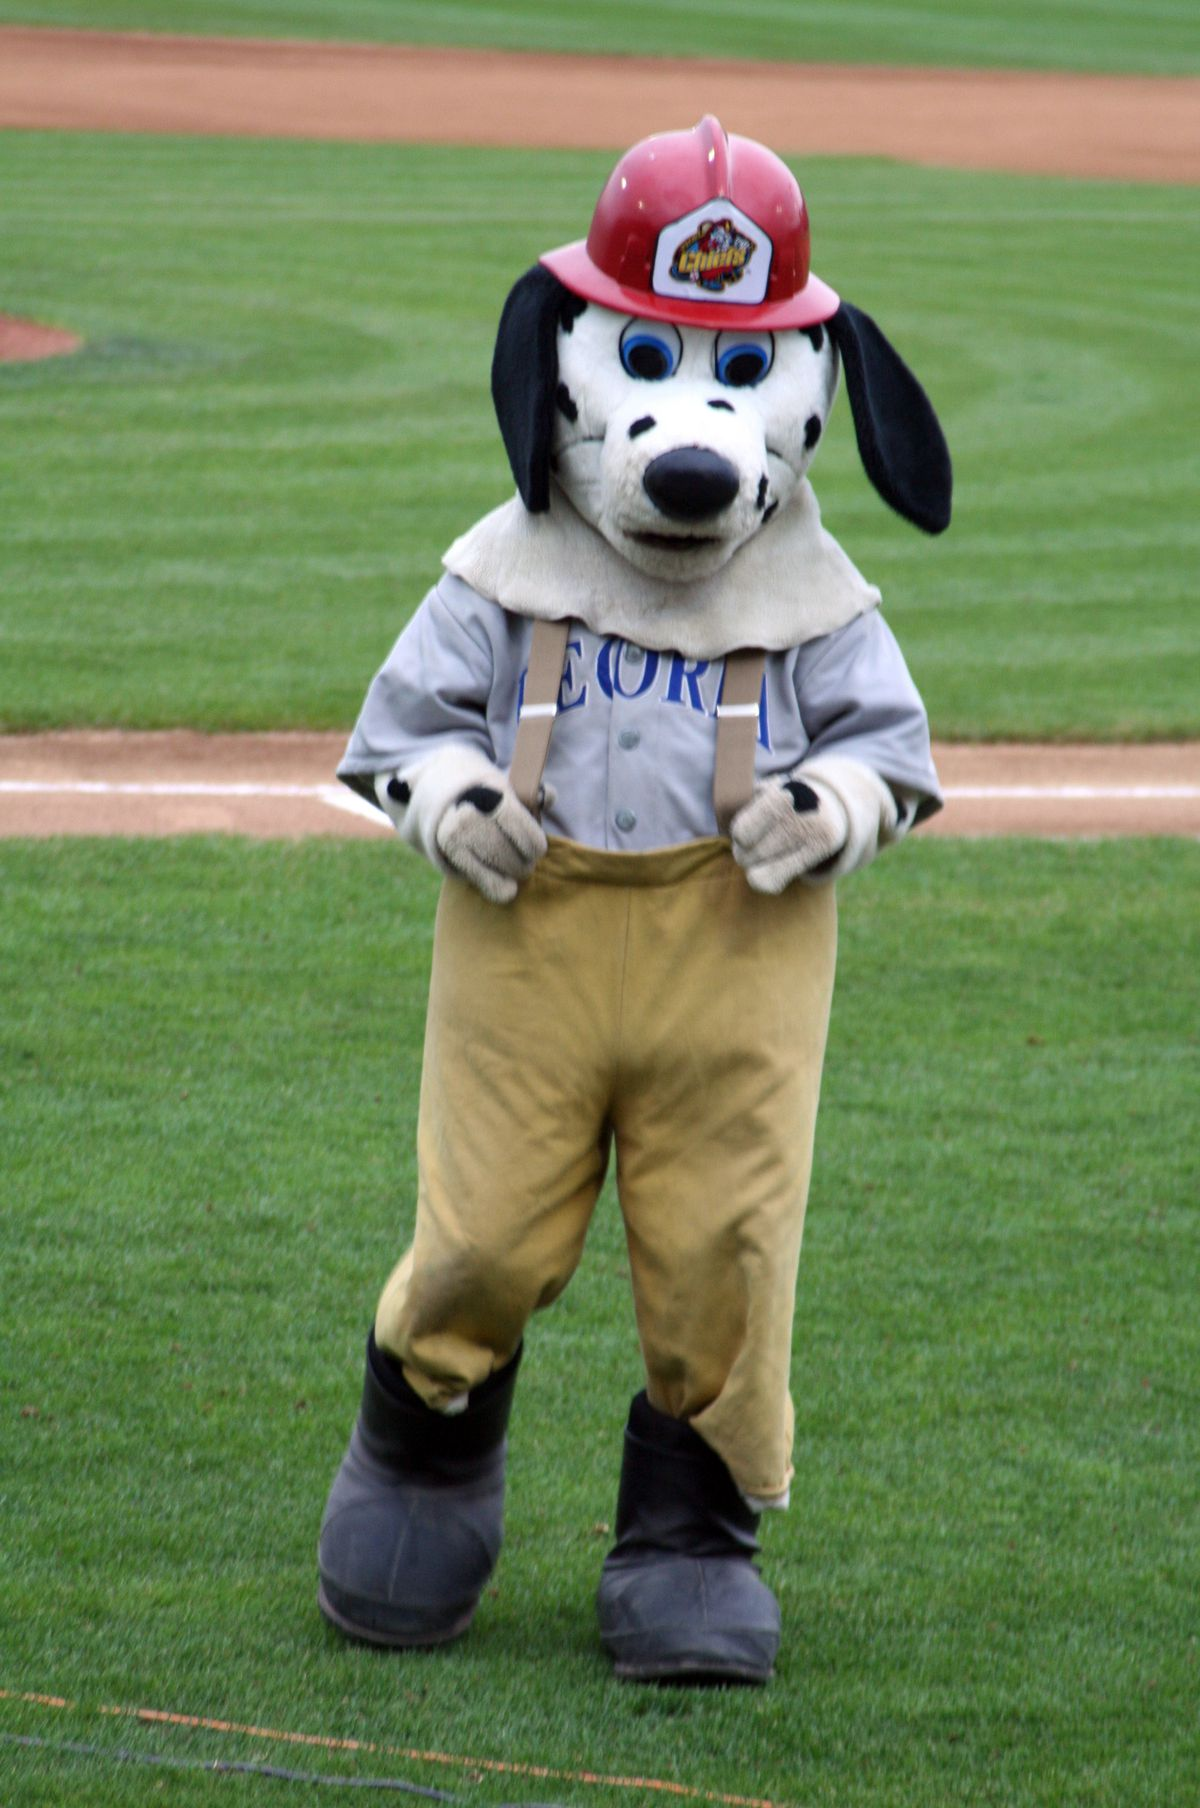 Homer, a firestation Dalmation, is the mascot of the Peoria